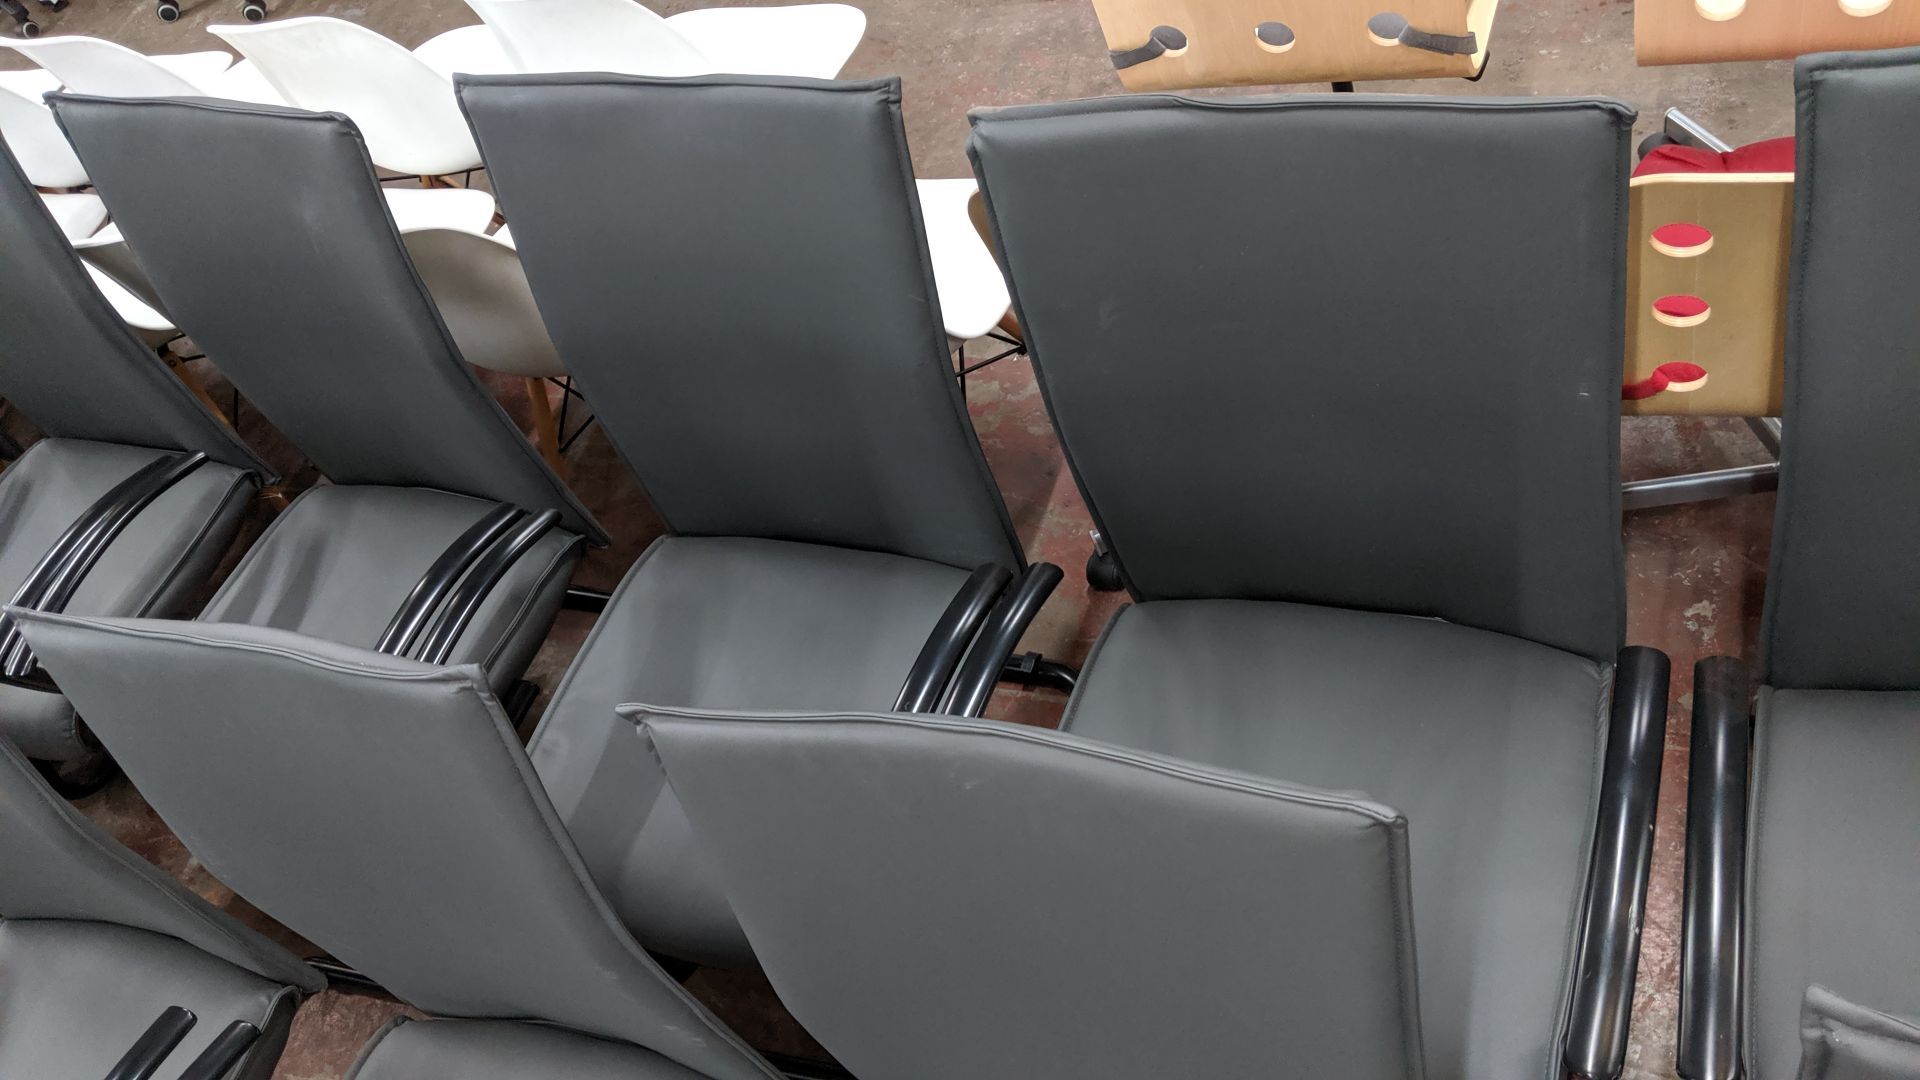 Lot 352 - 6 off black metal cantilever framed executive/meeting chairs with grey leather-look upholstery NB.